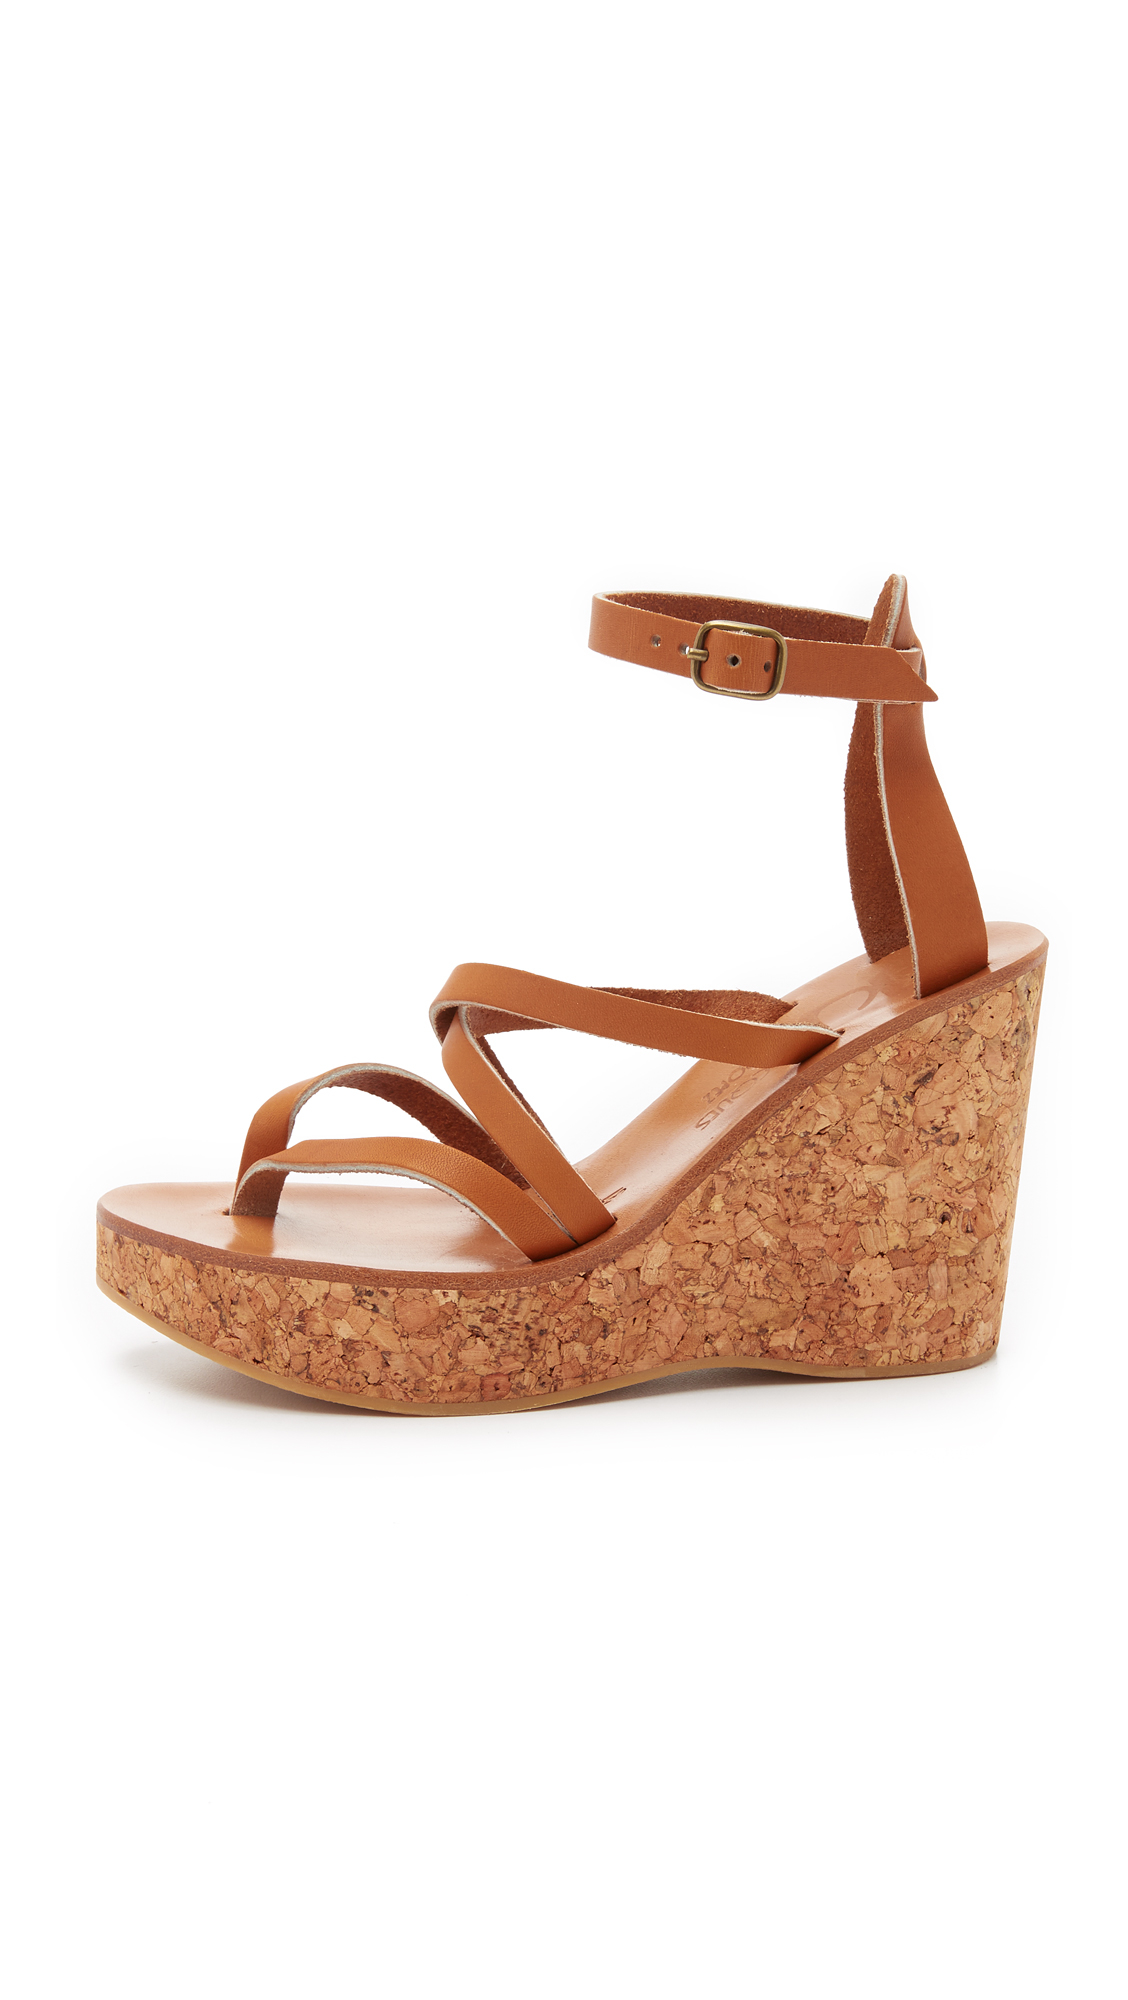 776bb1a4392 K. Jacques Cunegonde Wedge Sandals in Natural - Lyst